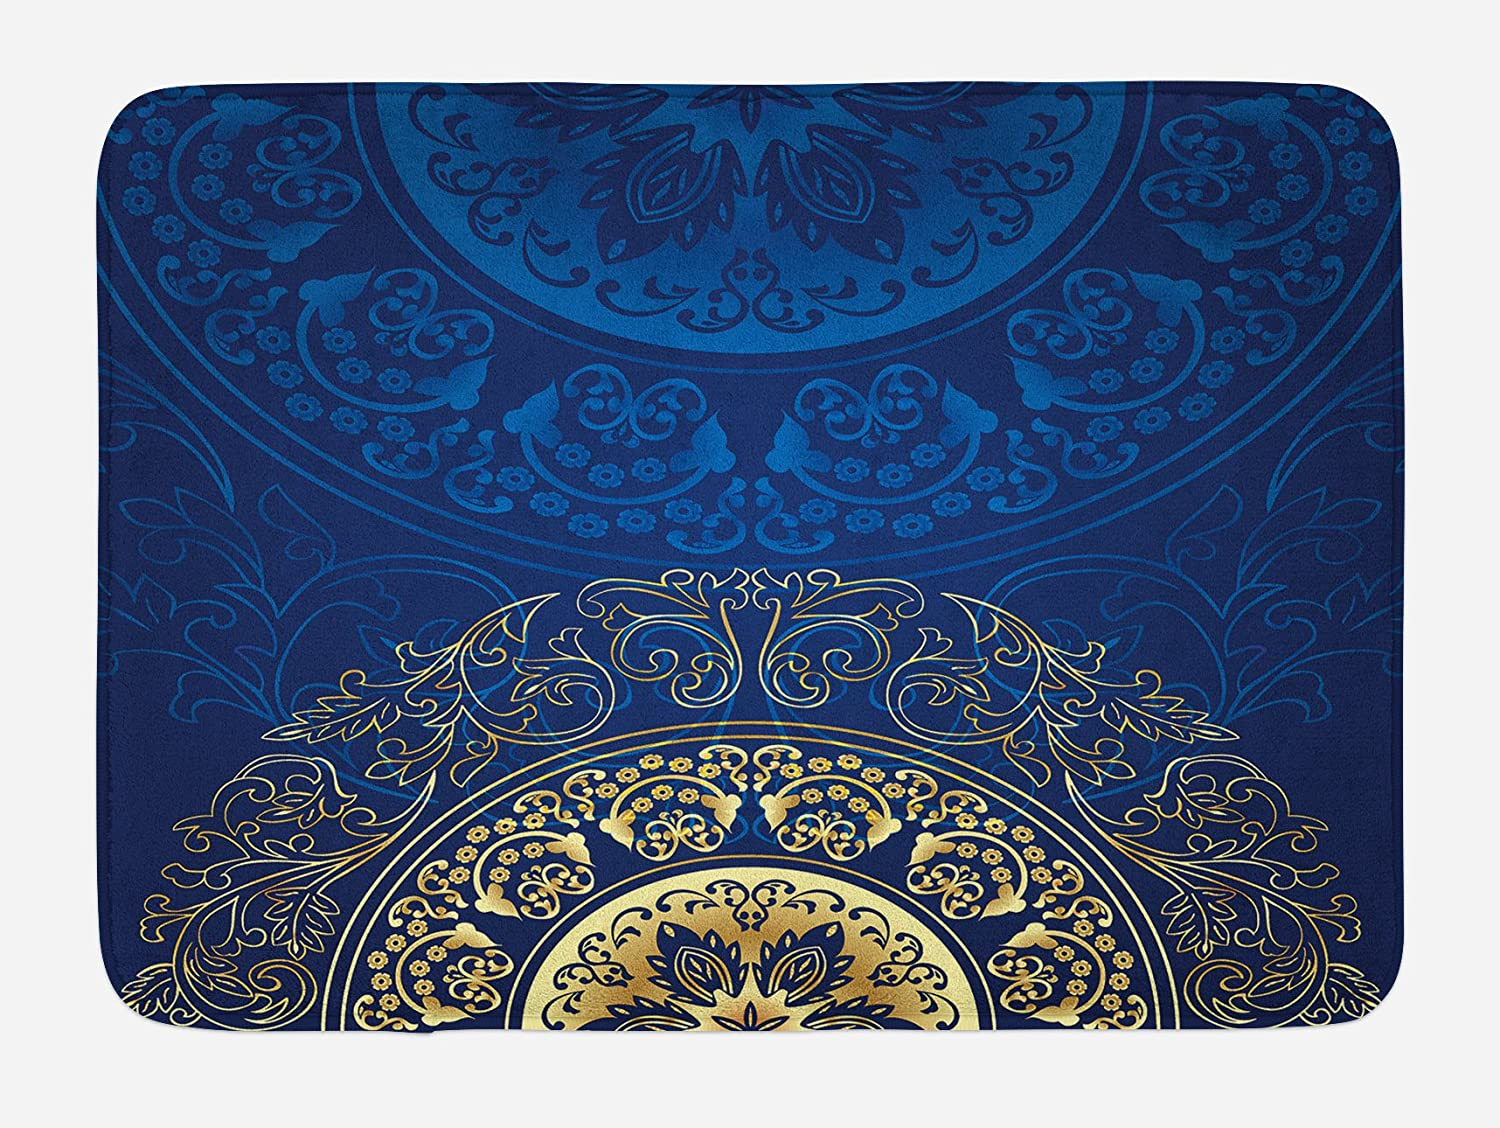 "Lunarable Royal Blue Bath Mat, Vintage Eastern Circular Floral Old Fashioned Design, Plush Bathroom Decor Mat with Non Slip Backing, 29.5"" X 17.5"", Blue Yellow"